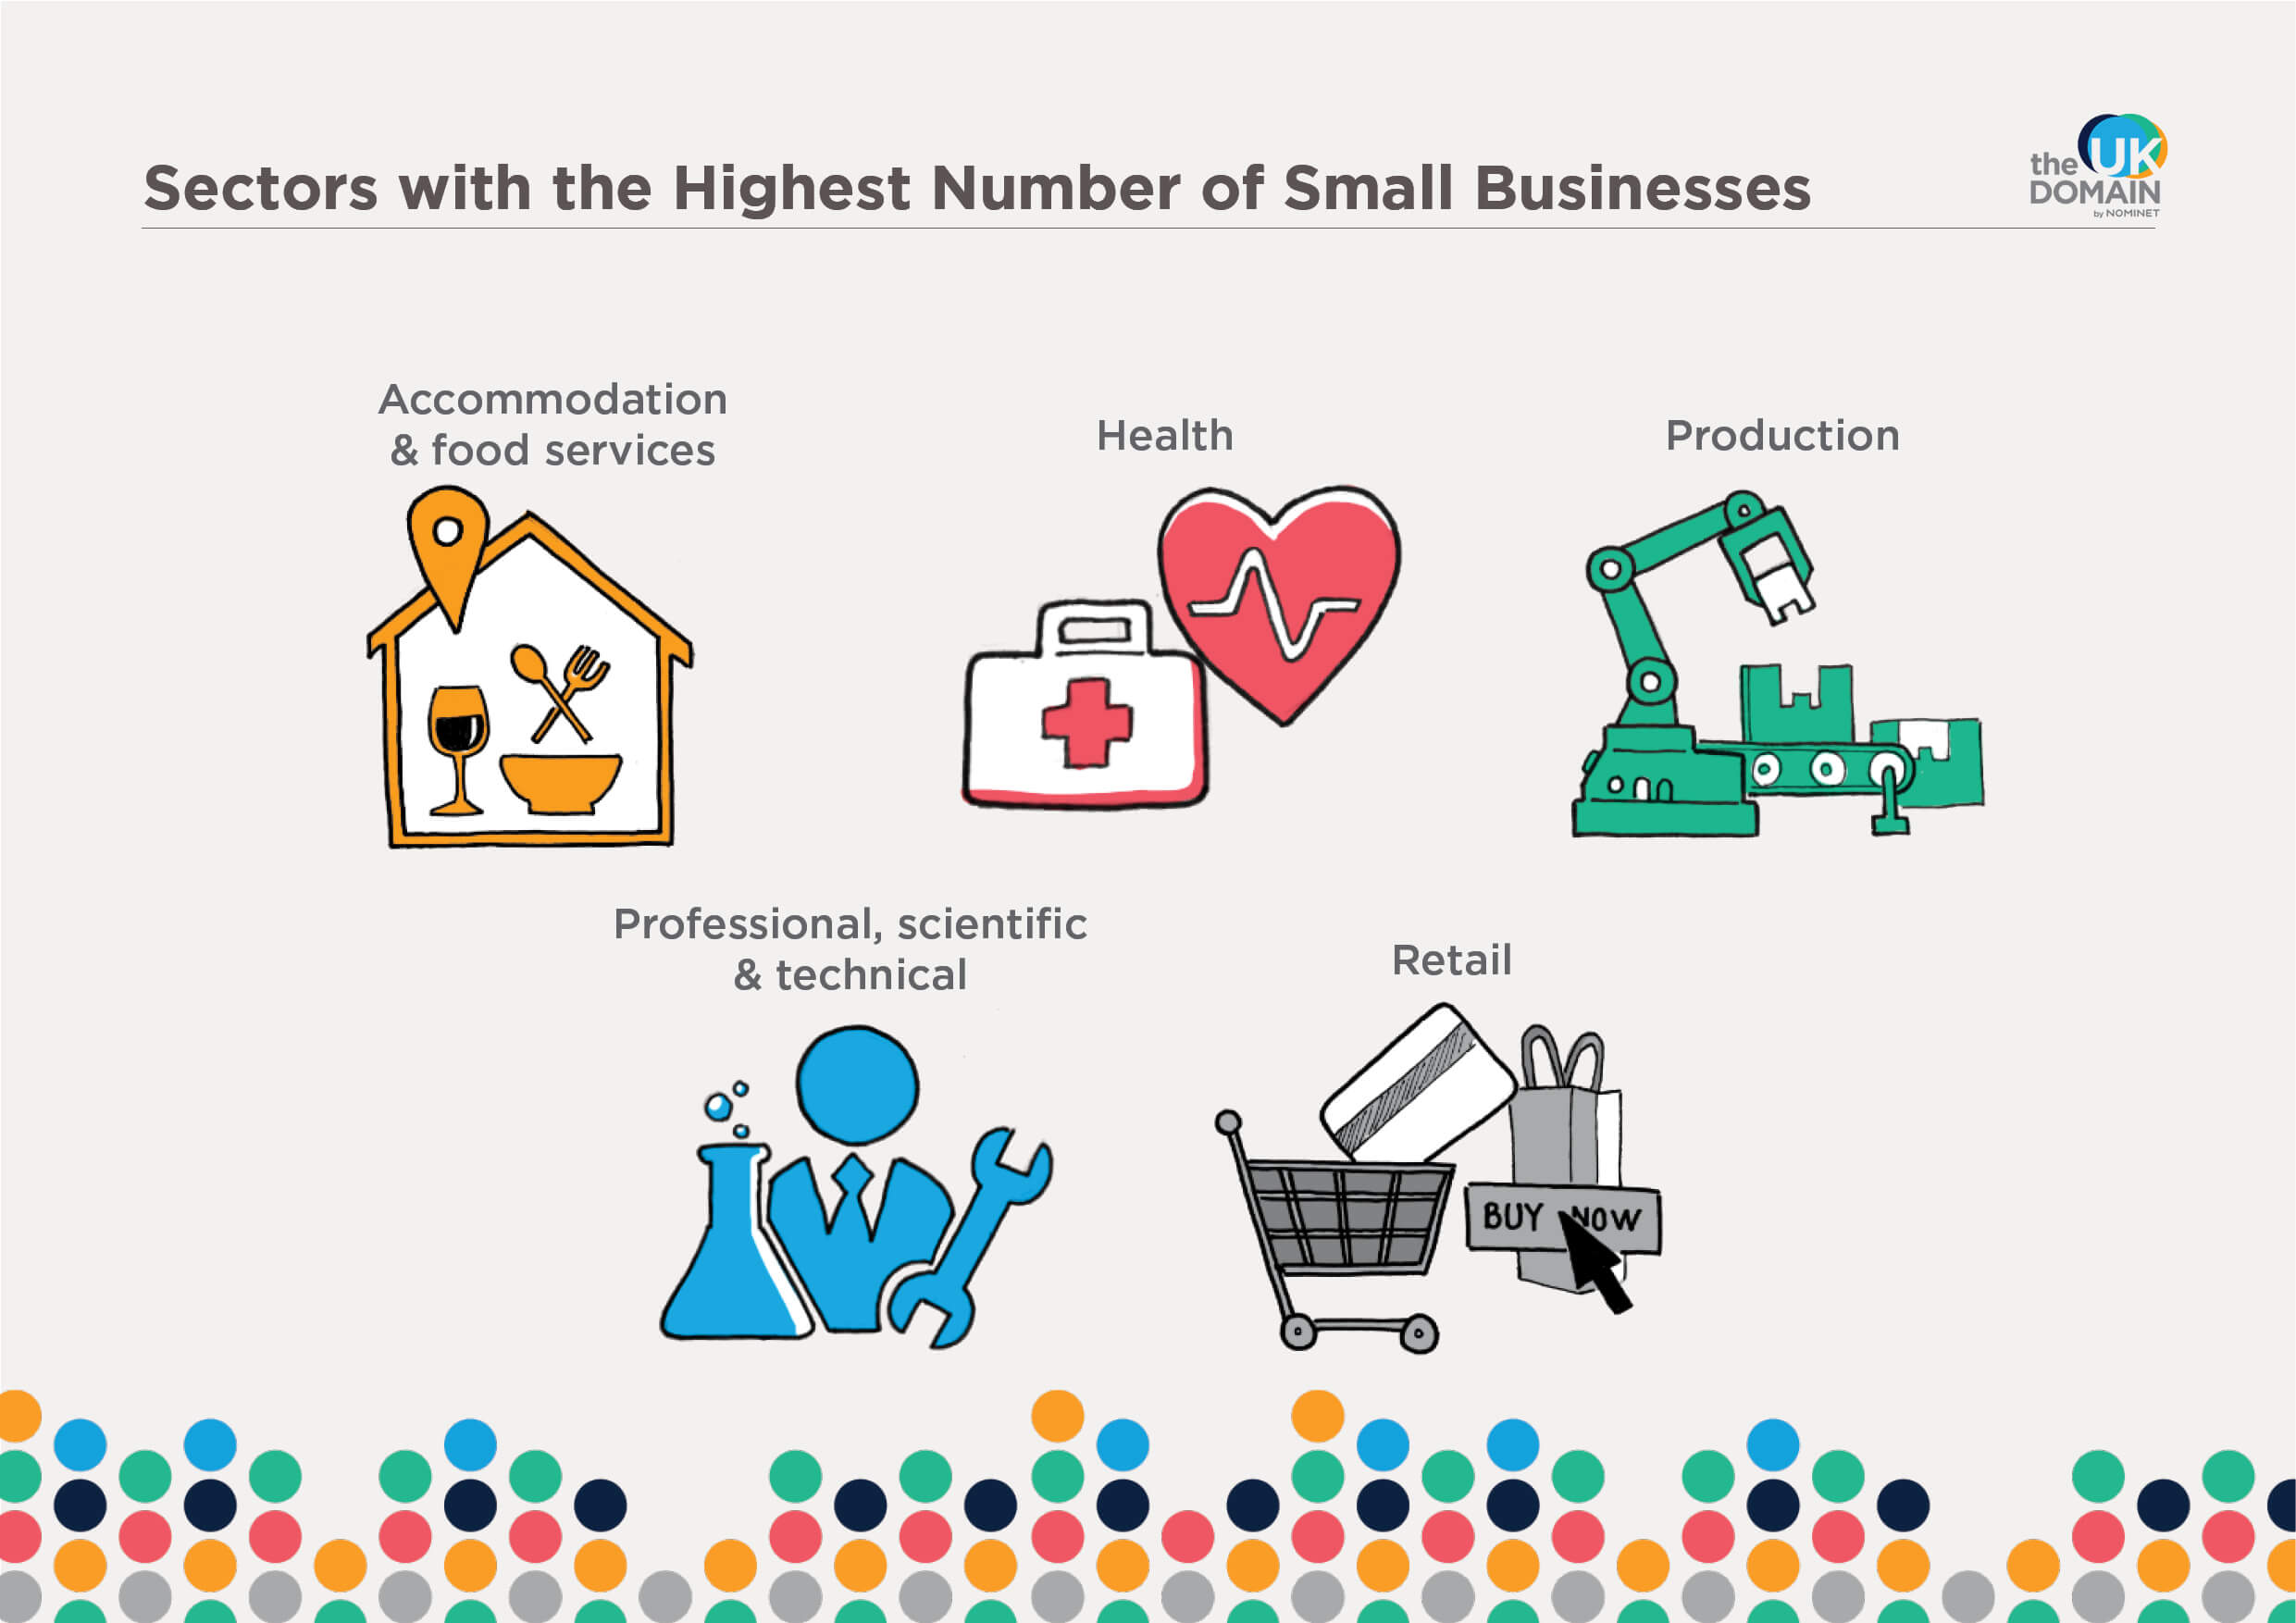 Sectors with the highest number of small businesses